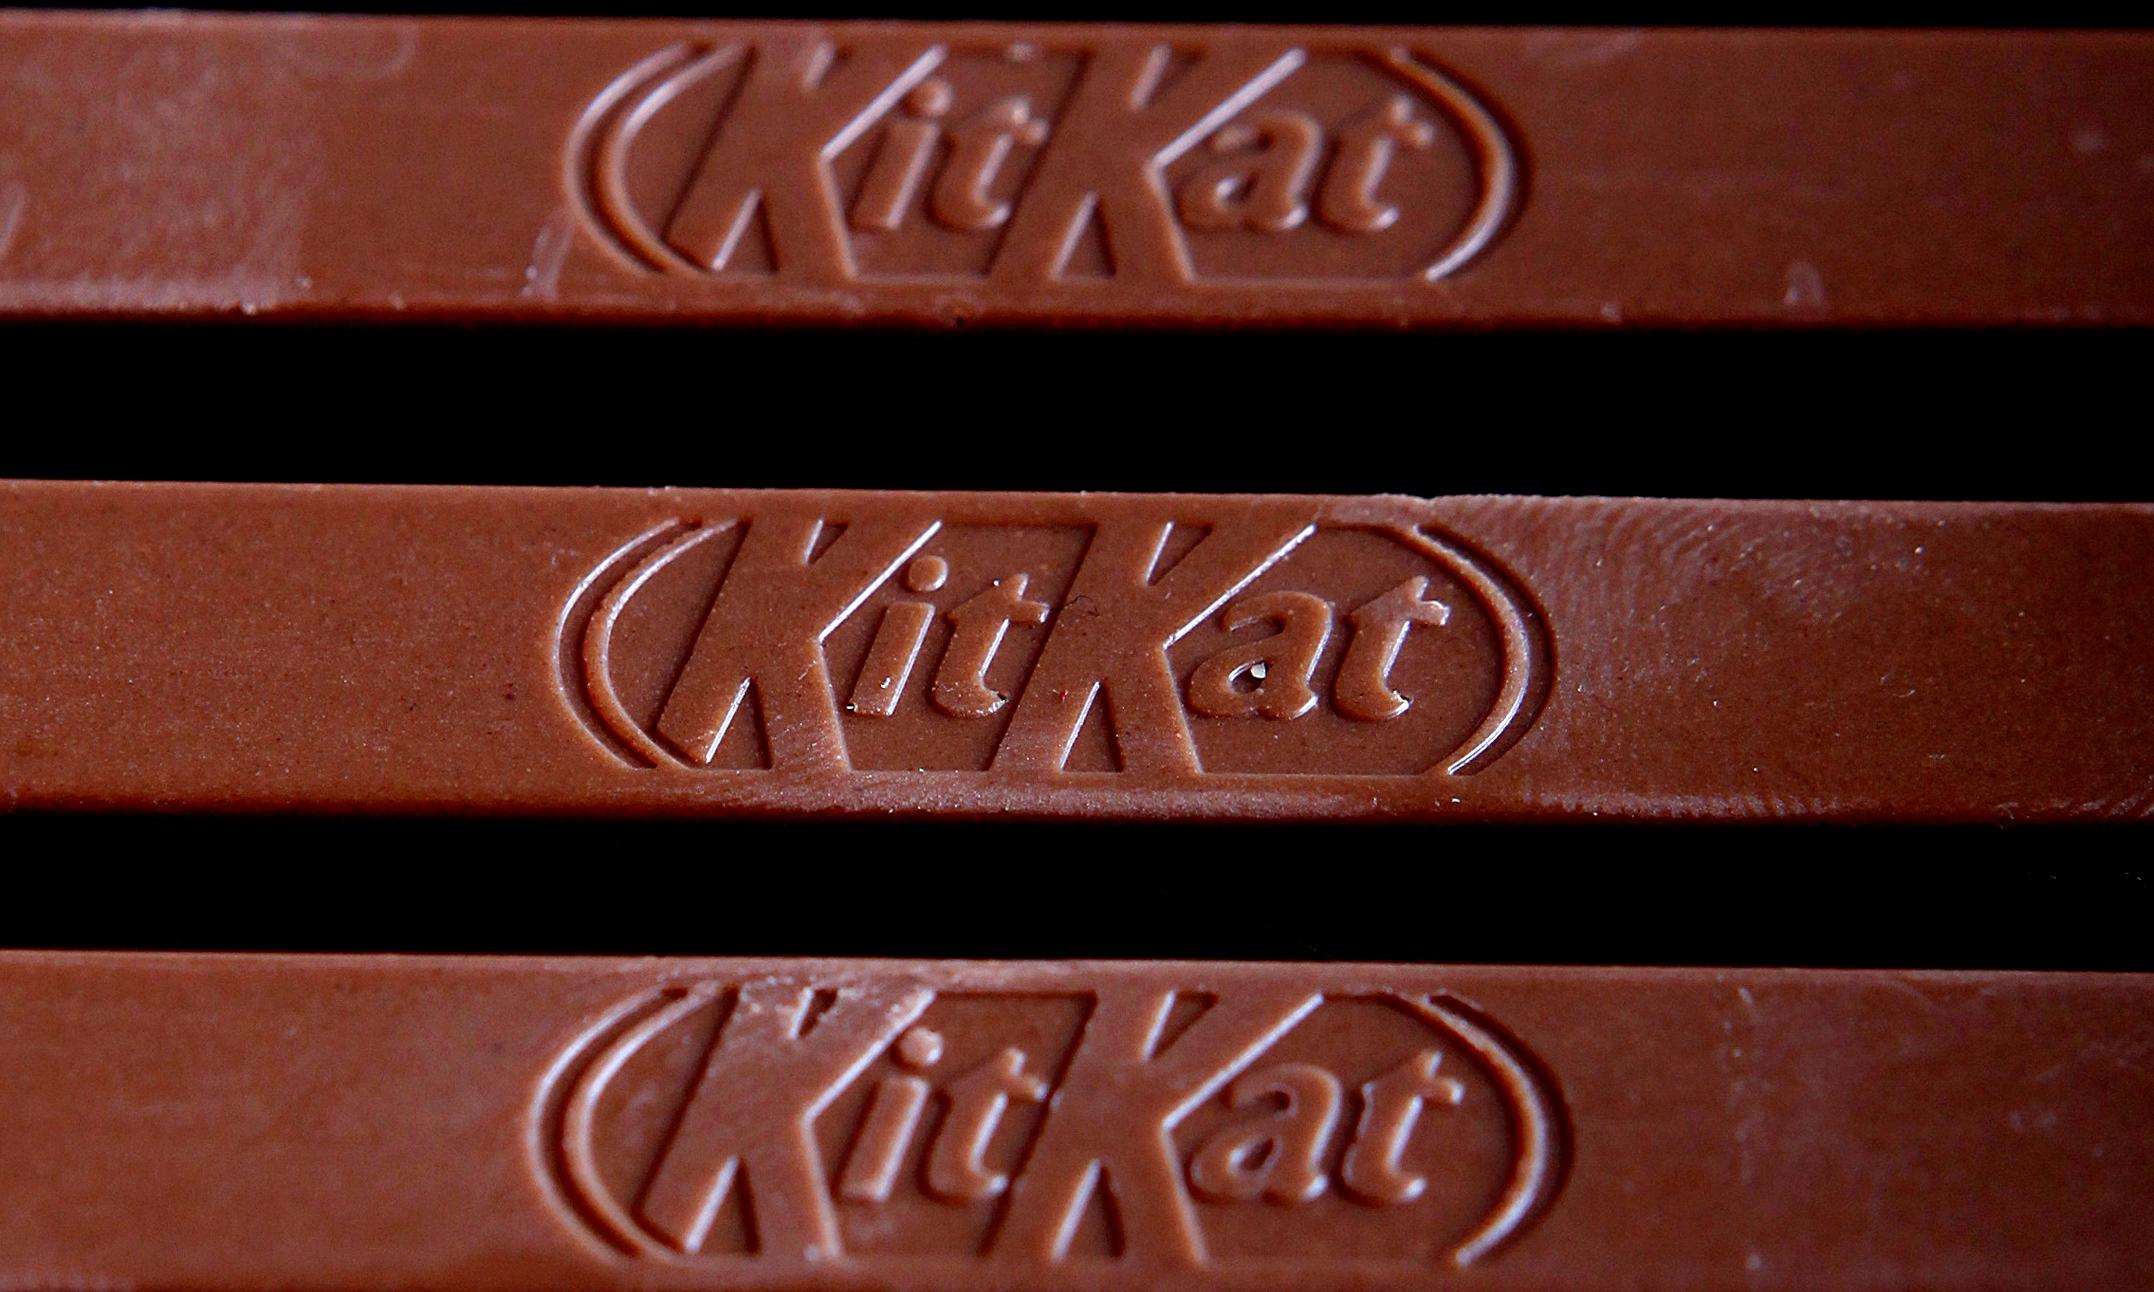 Copycat Kit Kats on cards as European court of justice rejects trademark bid